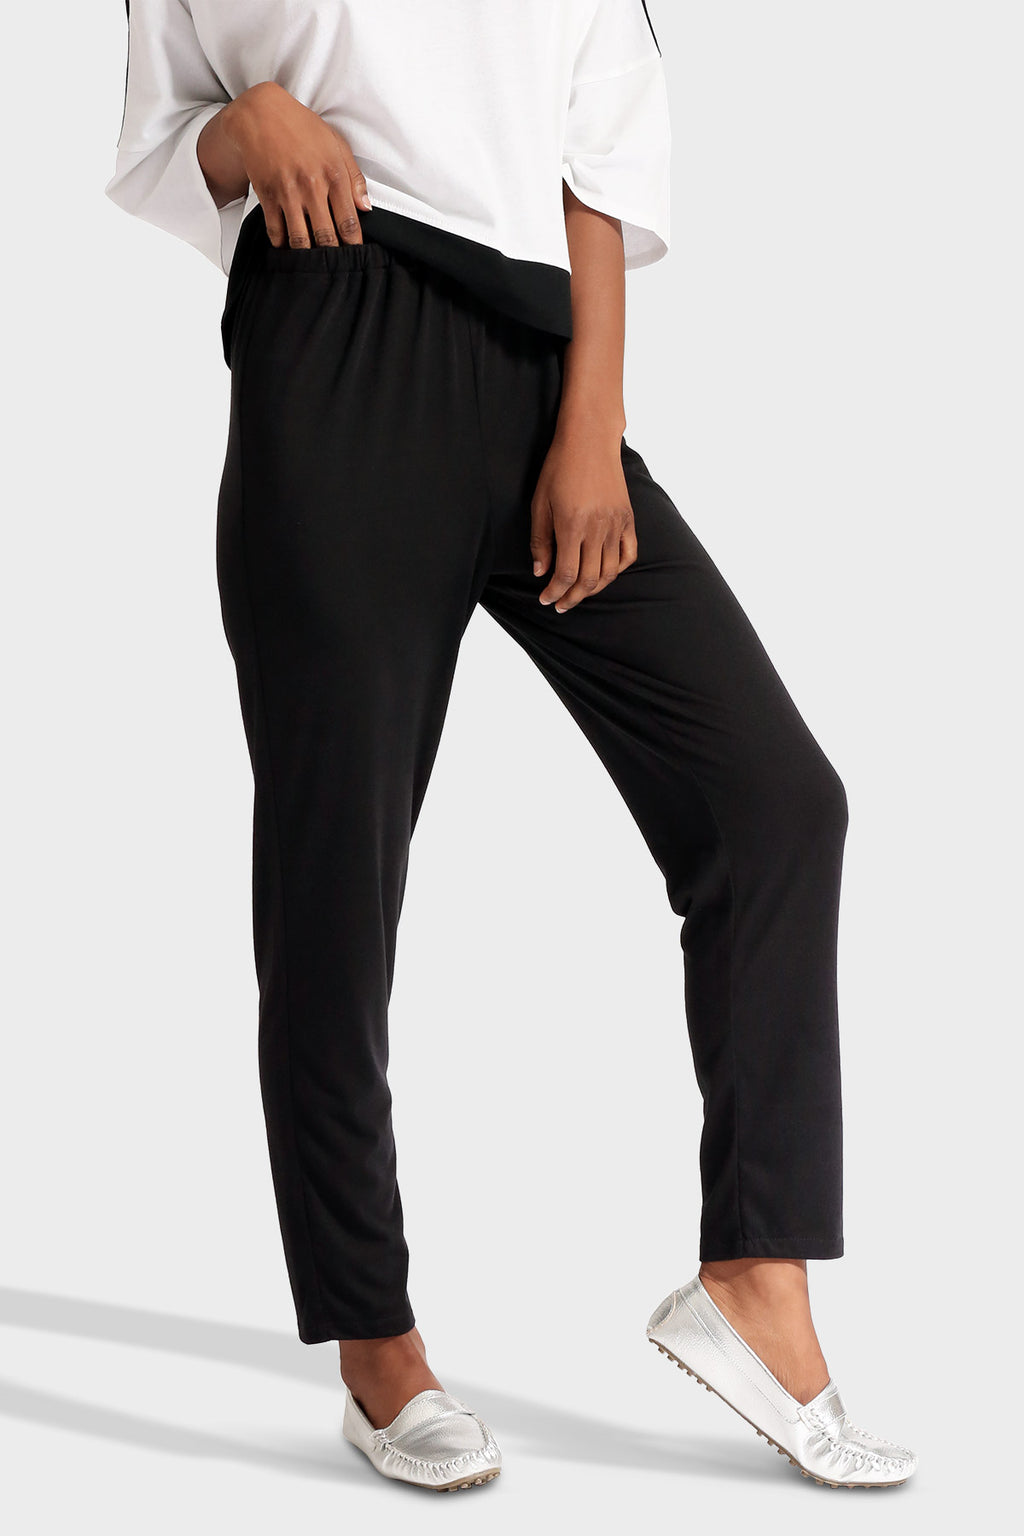 337 BRAND Women's Sustainable Basic Sage Sweatpant